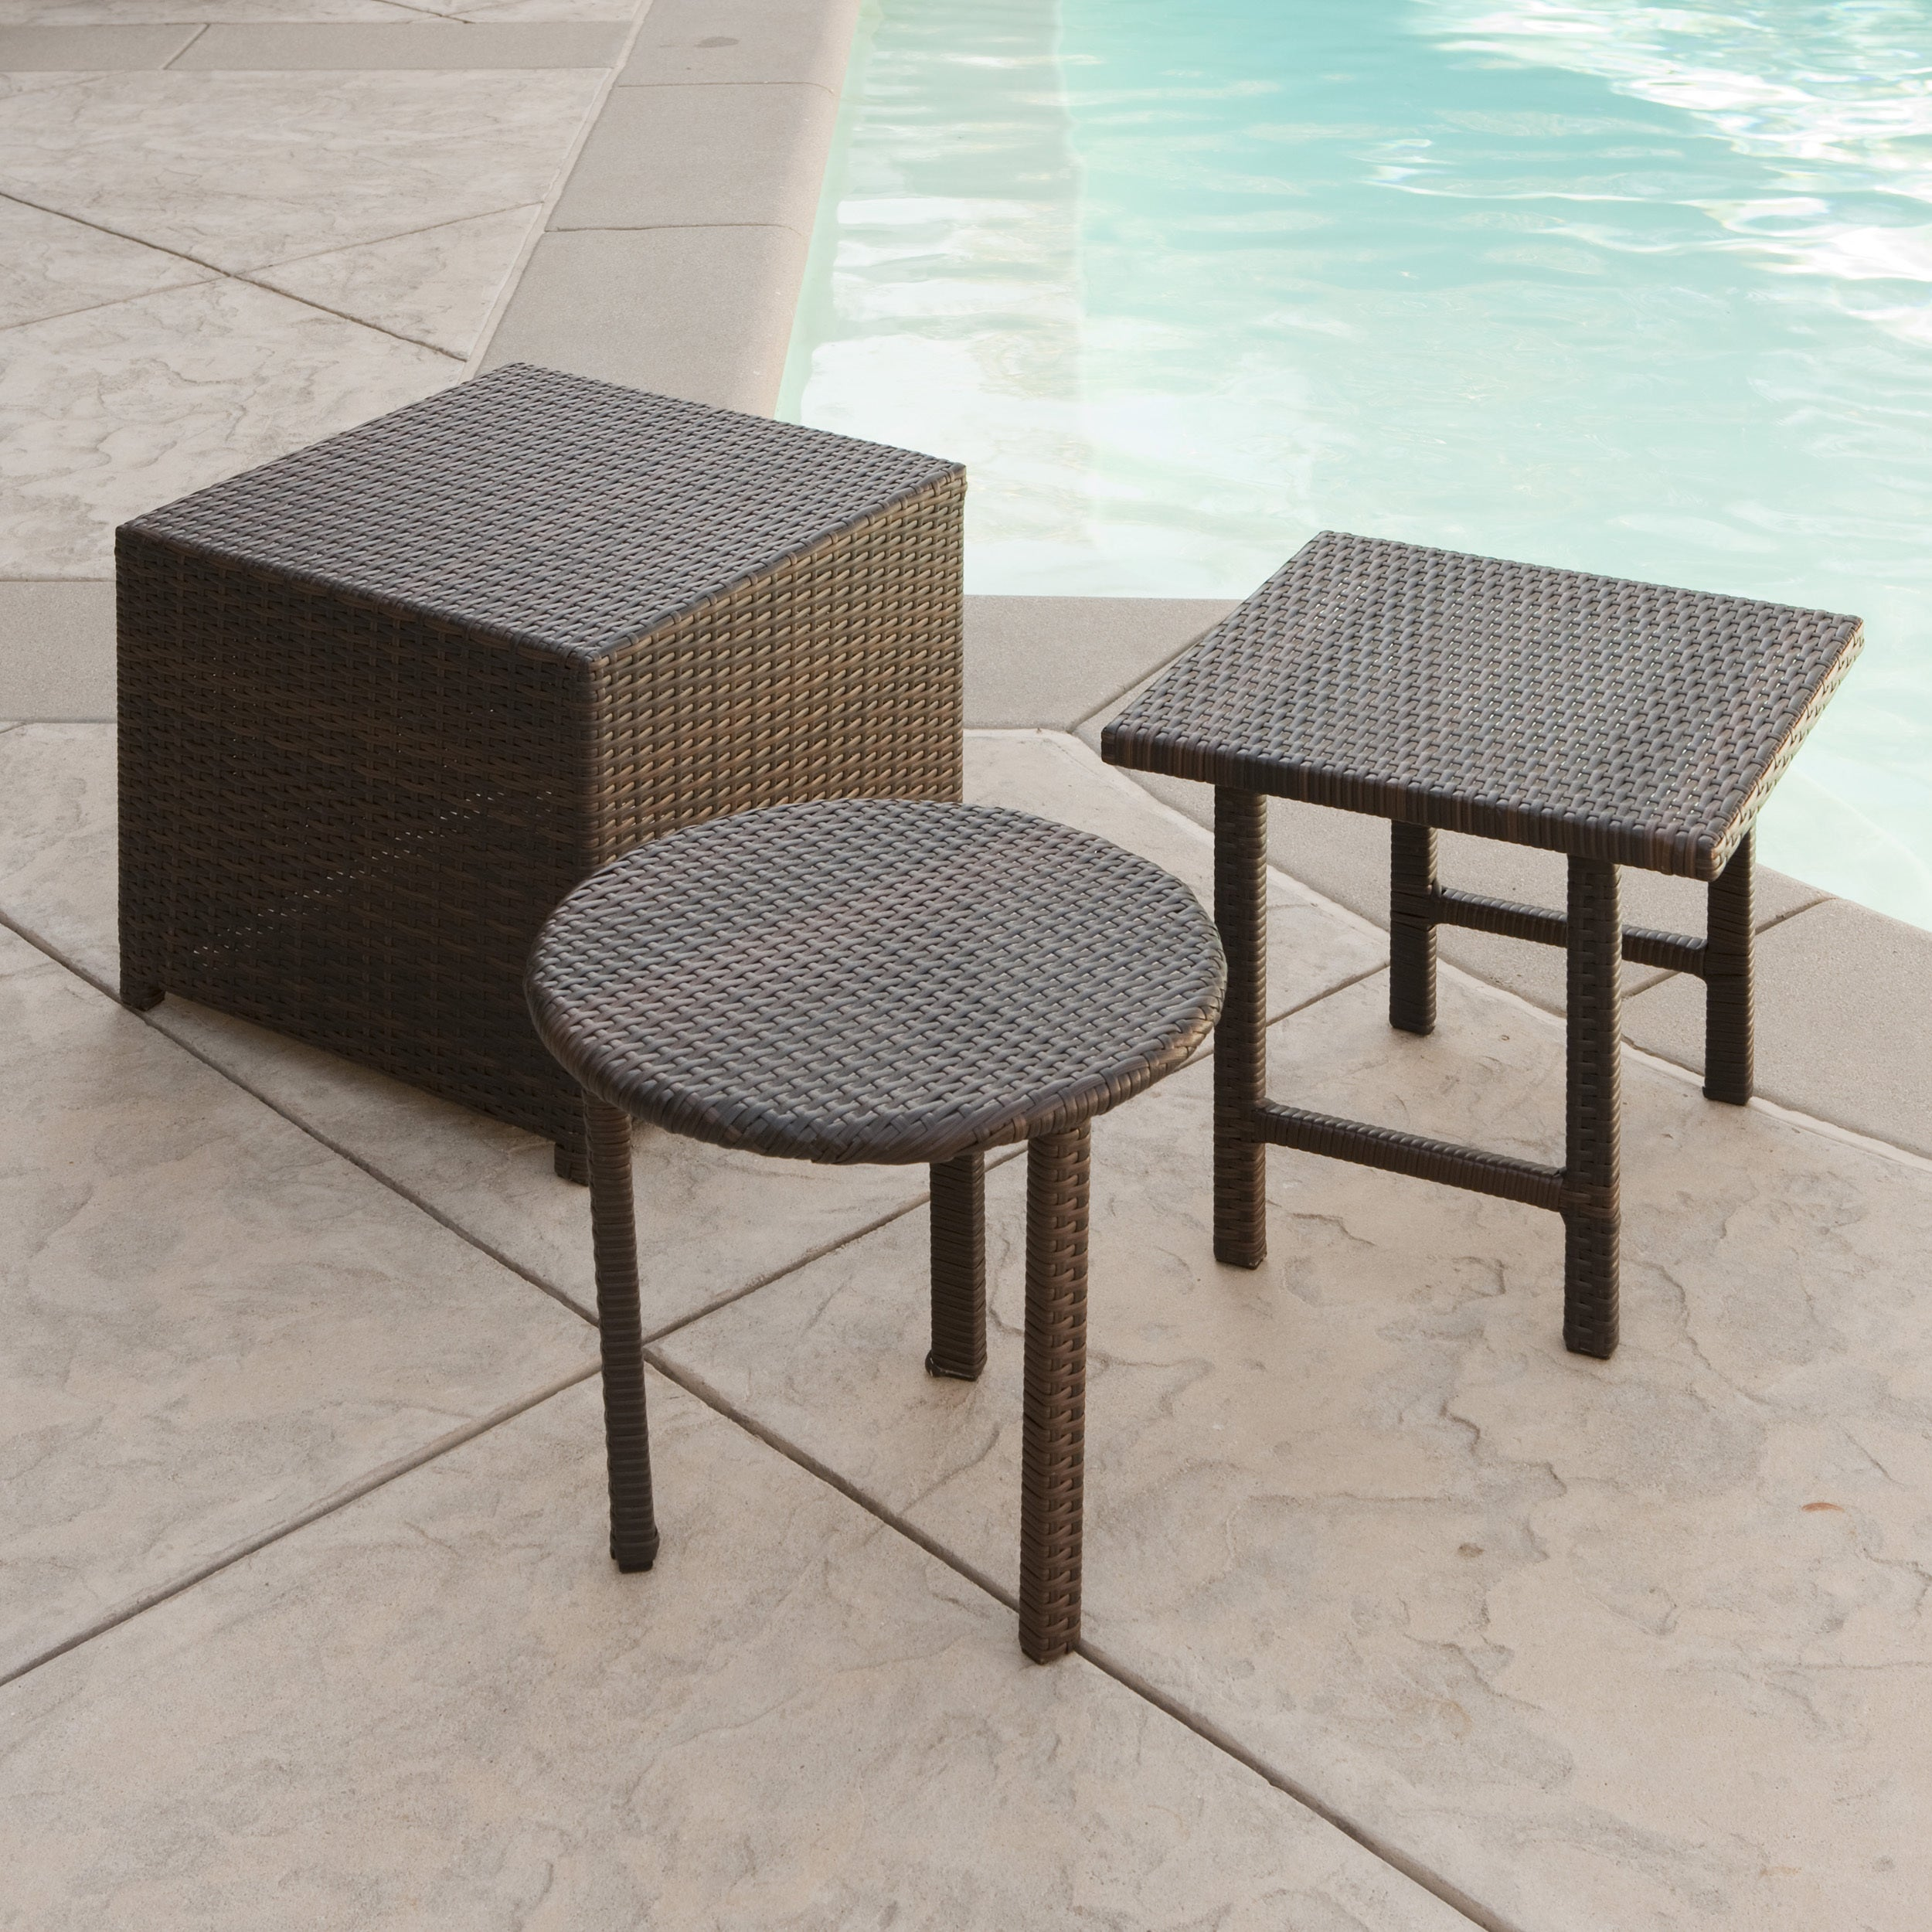 patio furniture outdoor yard dining accent end coffee table set ebay